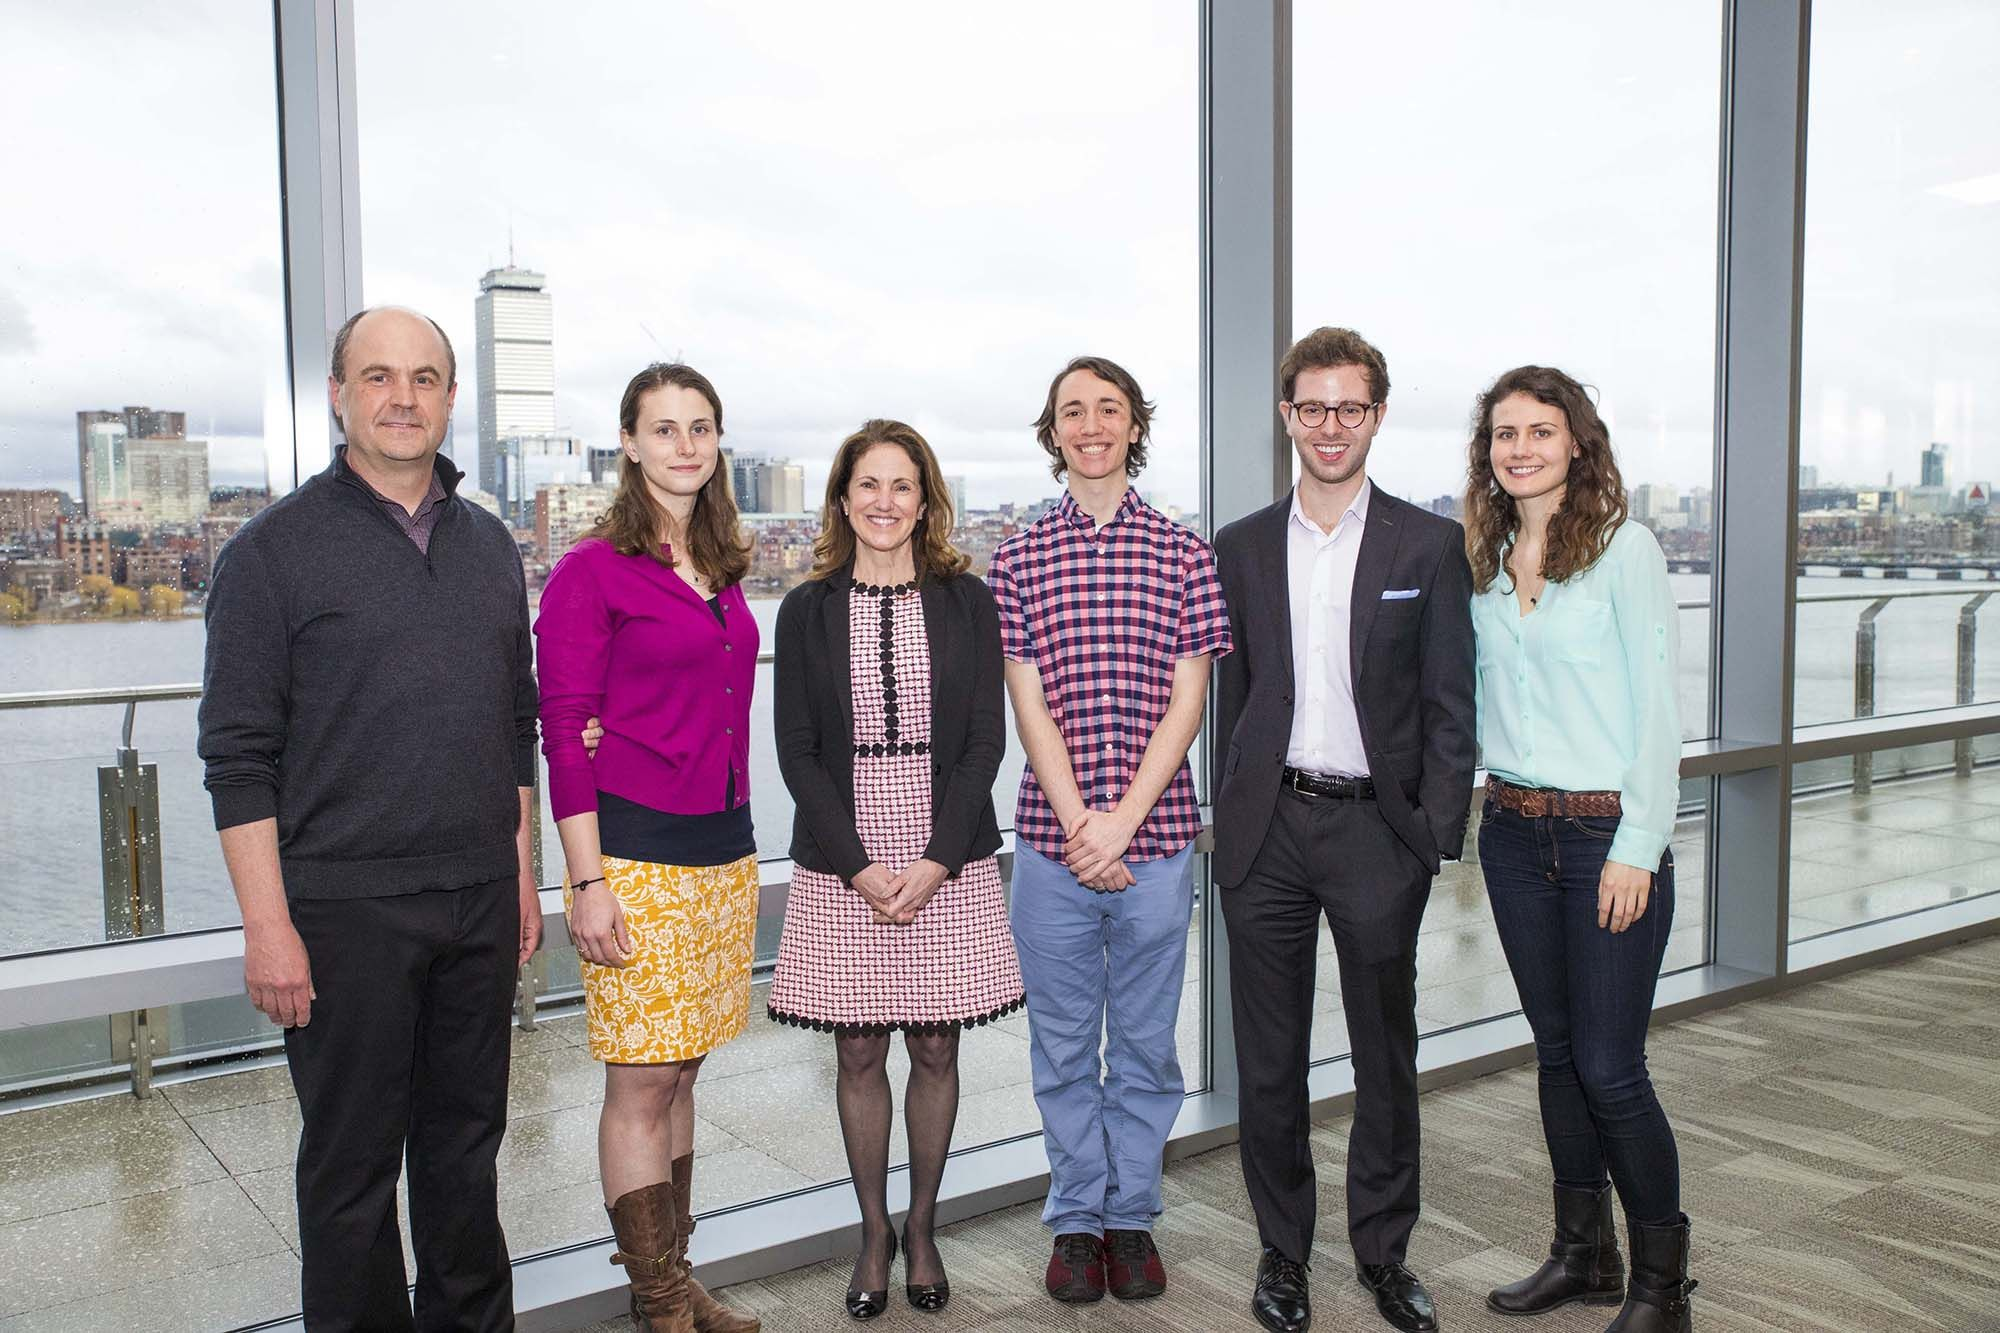 Winners of the 2018 Change Maker Award stand in a room with a view of the Boston skyline